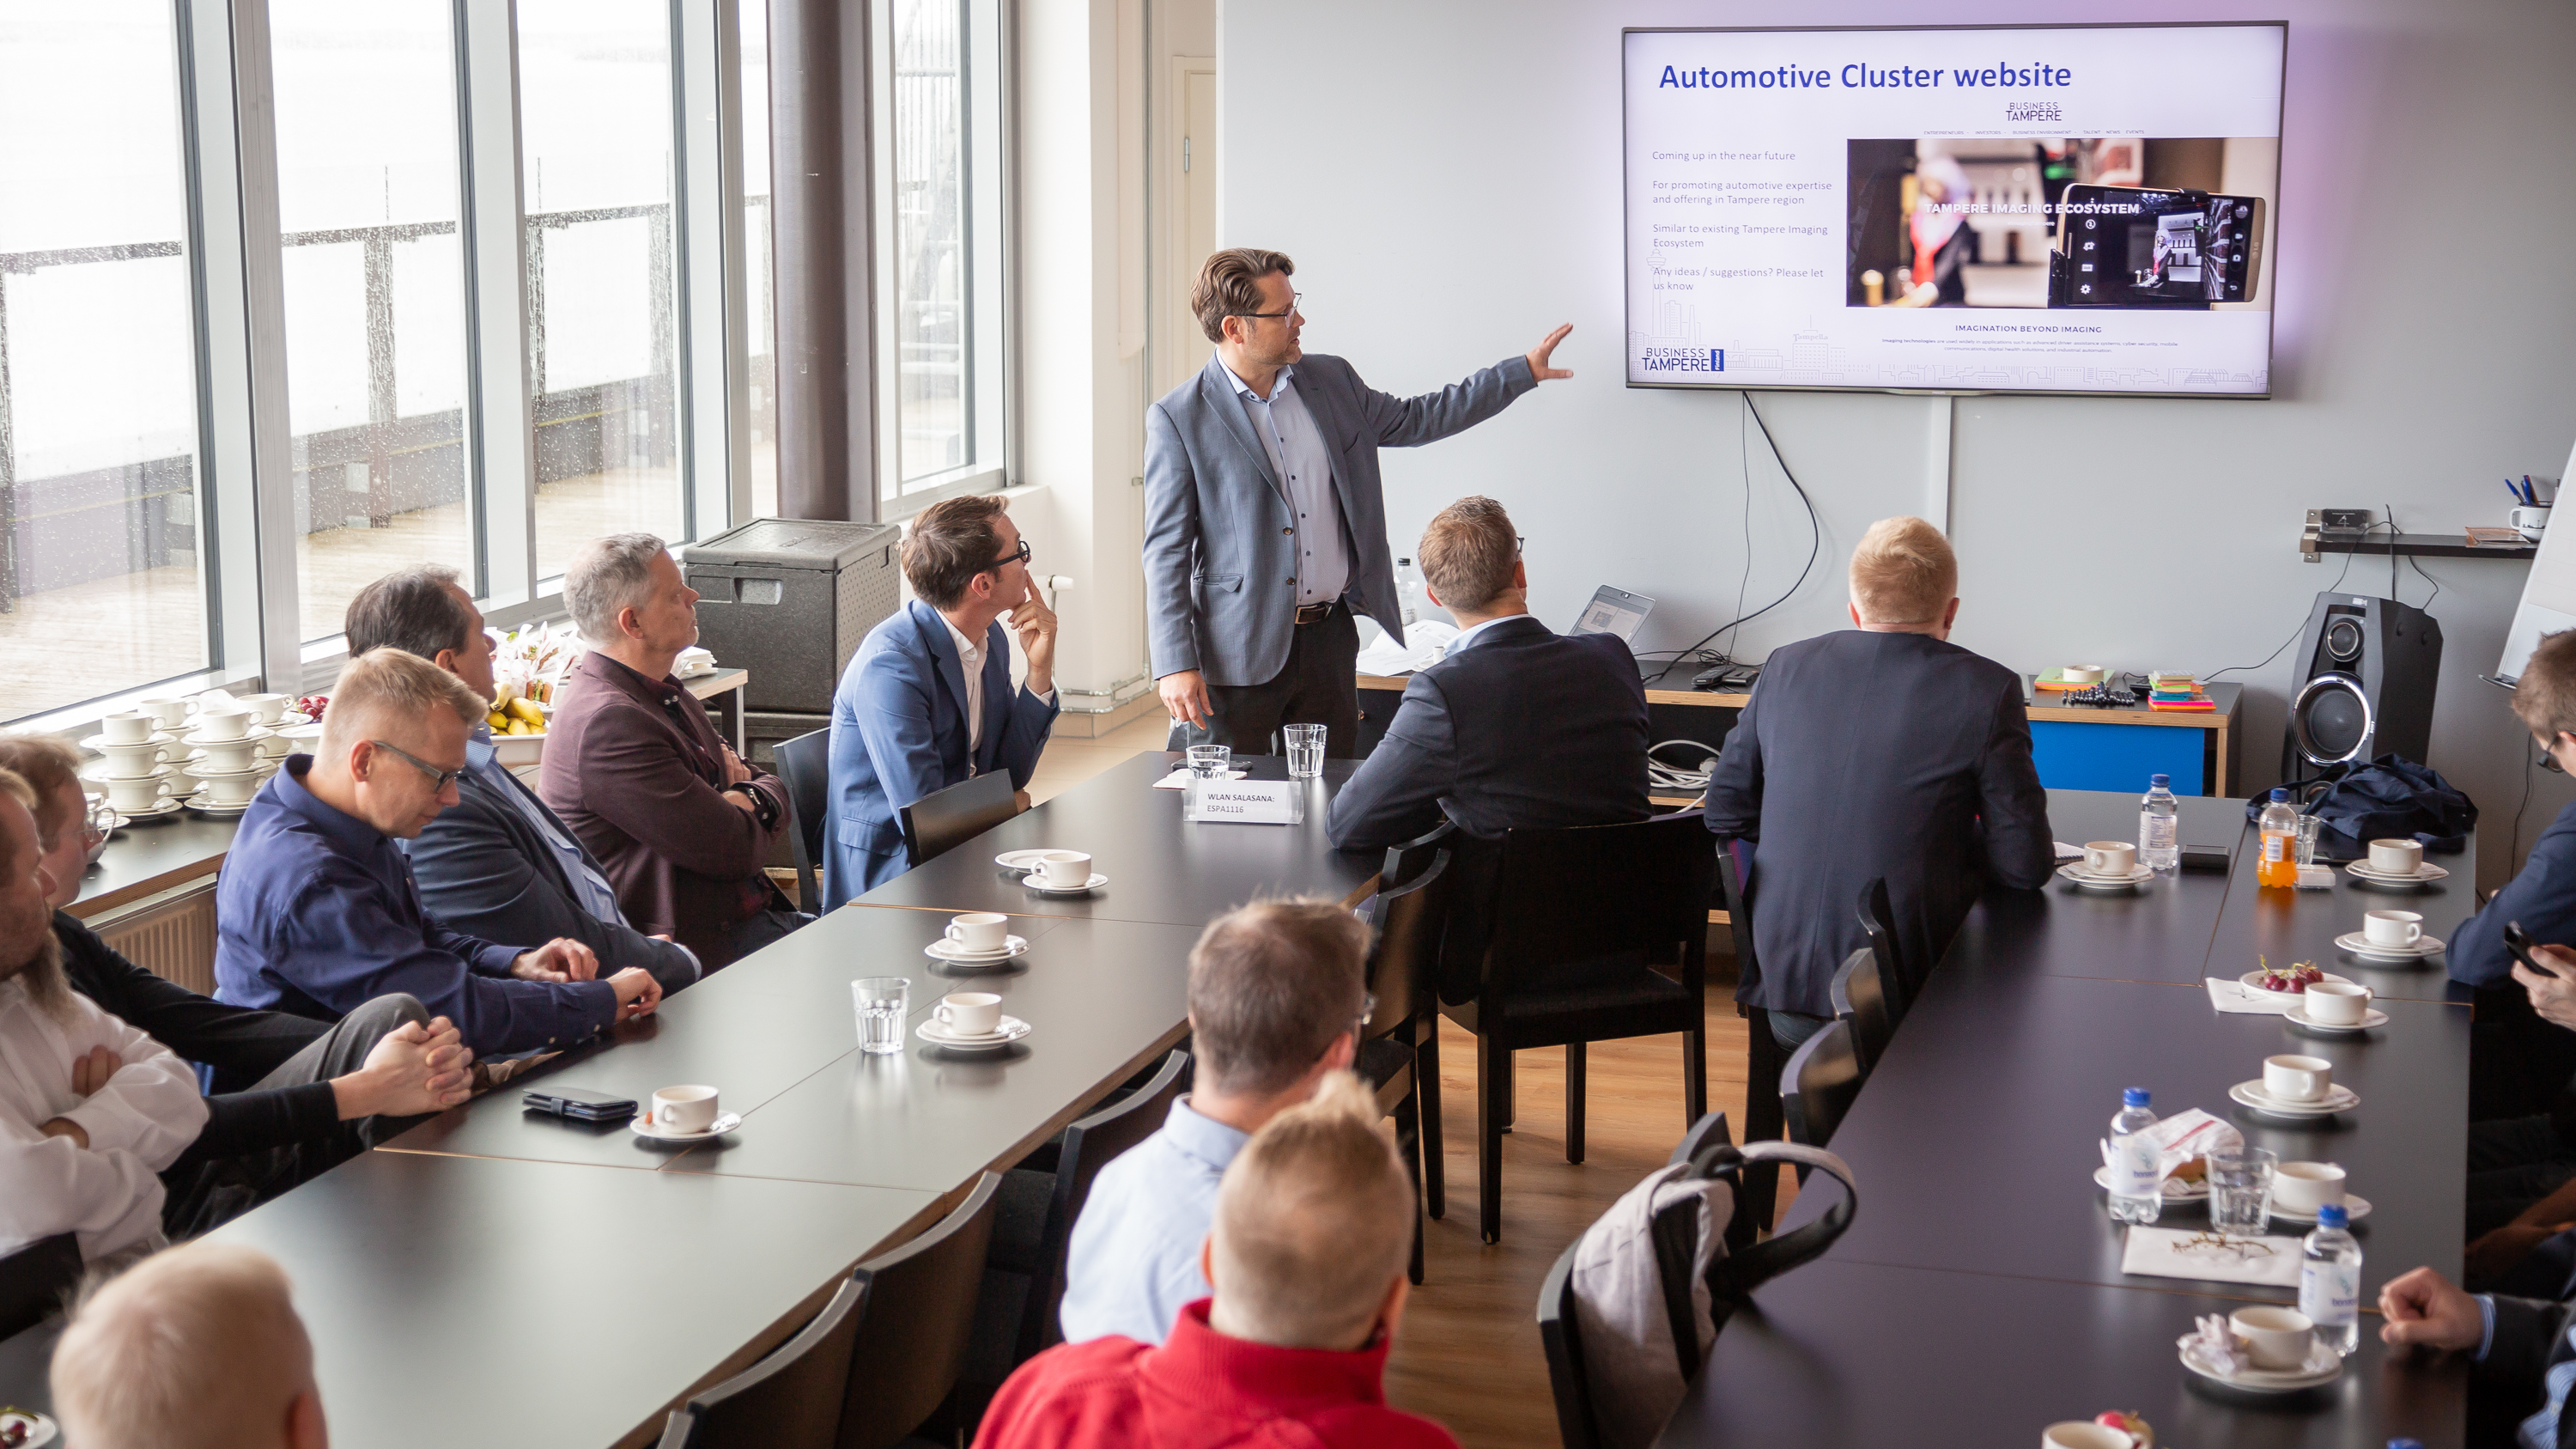 Business Tampere Automotive Cluster, September 2019. Photo: Mirella Mellonmaa